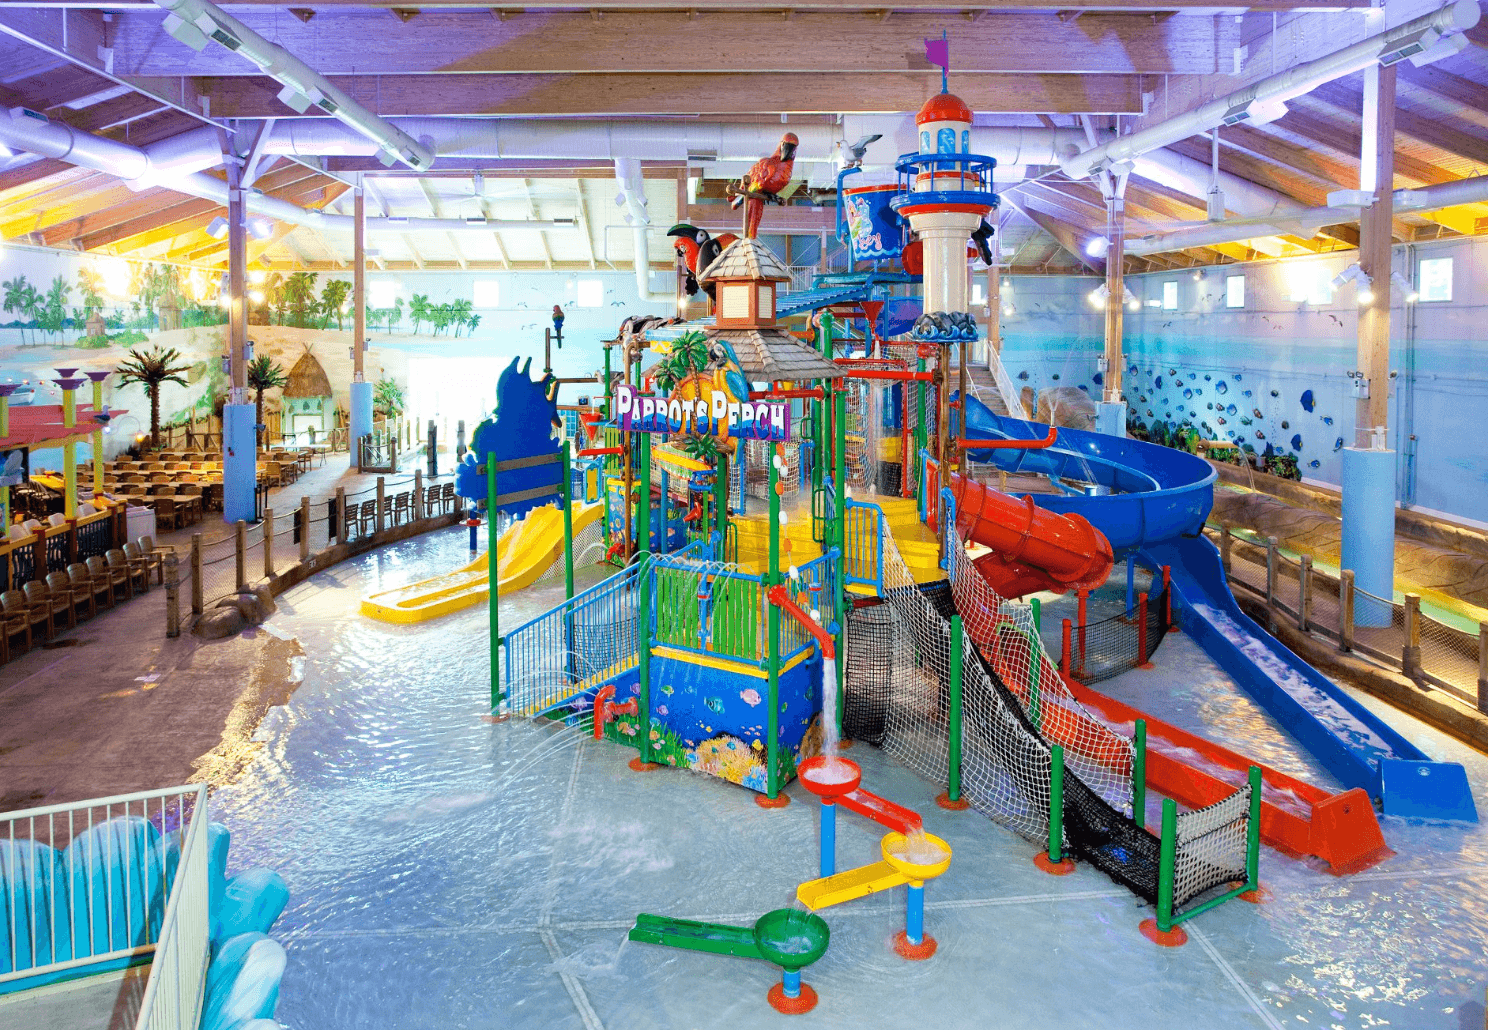 11 Best Indoor Hotel Pools For Kids Hotels With Indoor Pools